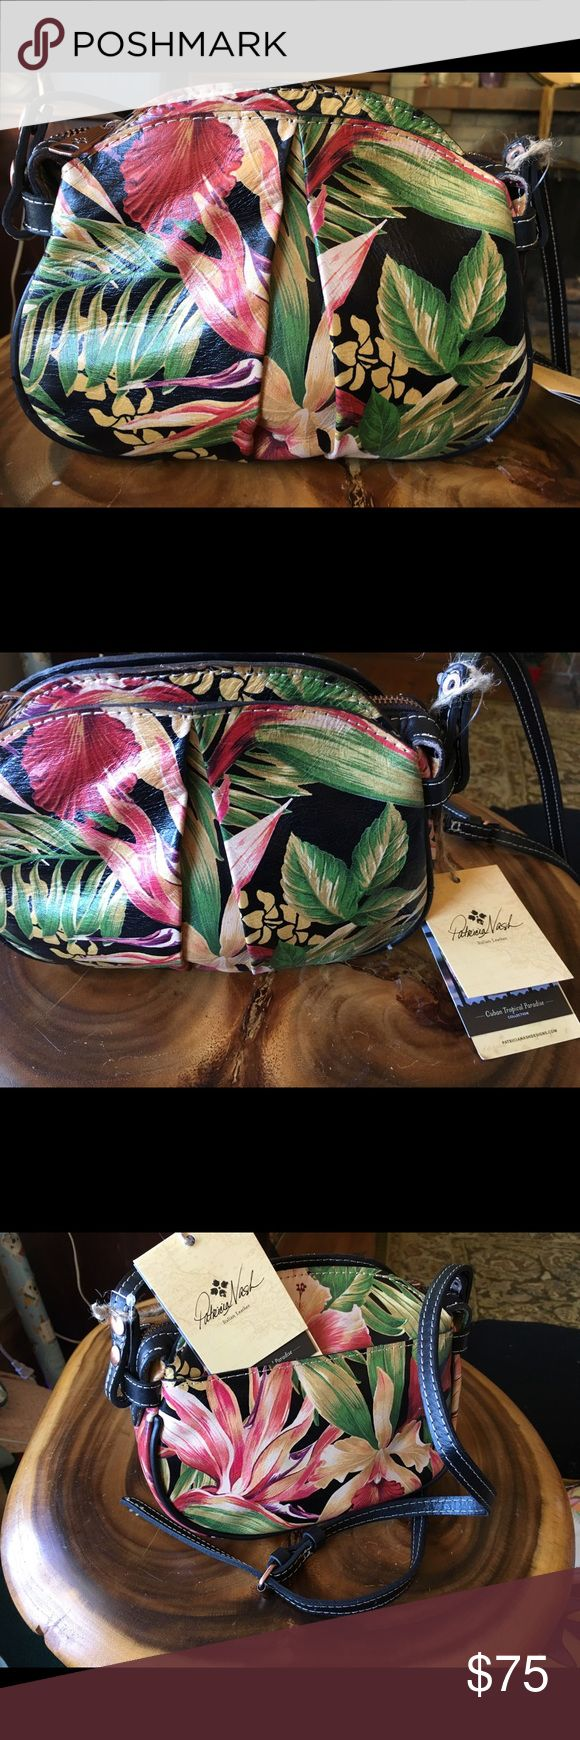 Patricia Nash Crossbody RARE!!!! Cubano Series Vegetable tanned Cuban tropical in black- Chania style Authenticity card & duster bag included Patricia Nash Bags